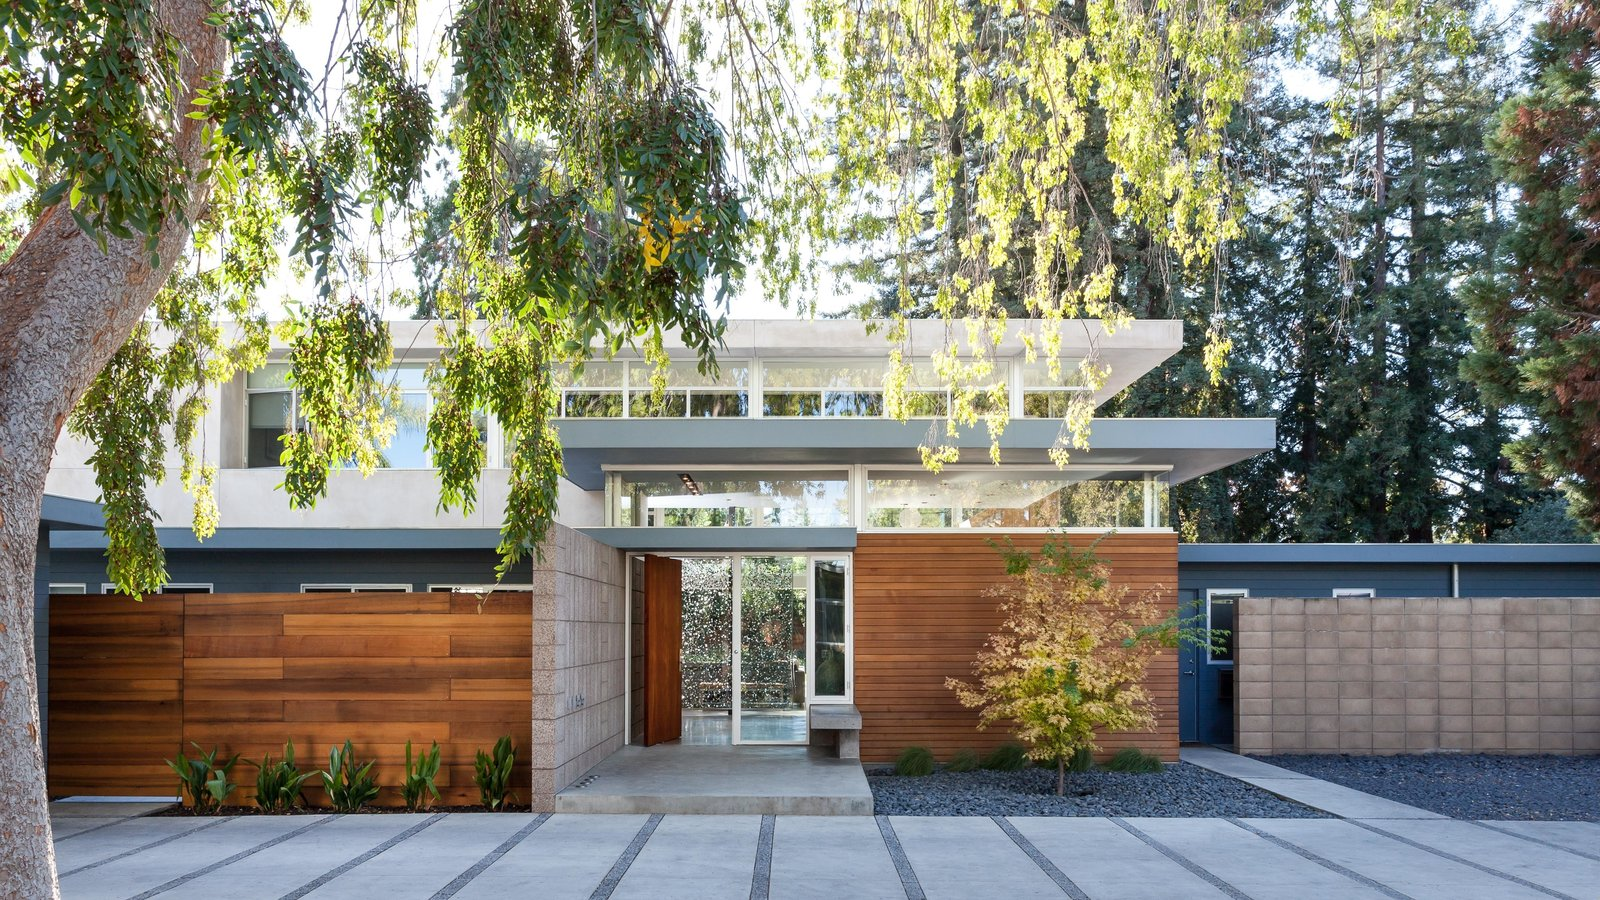 Photo 1 of 11 in A Year of Careful Study Leads to a Thoughtful Renovation of a 1949 Eichler